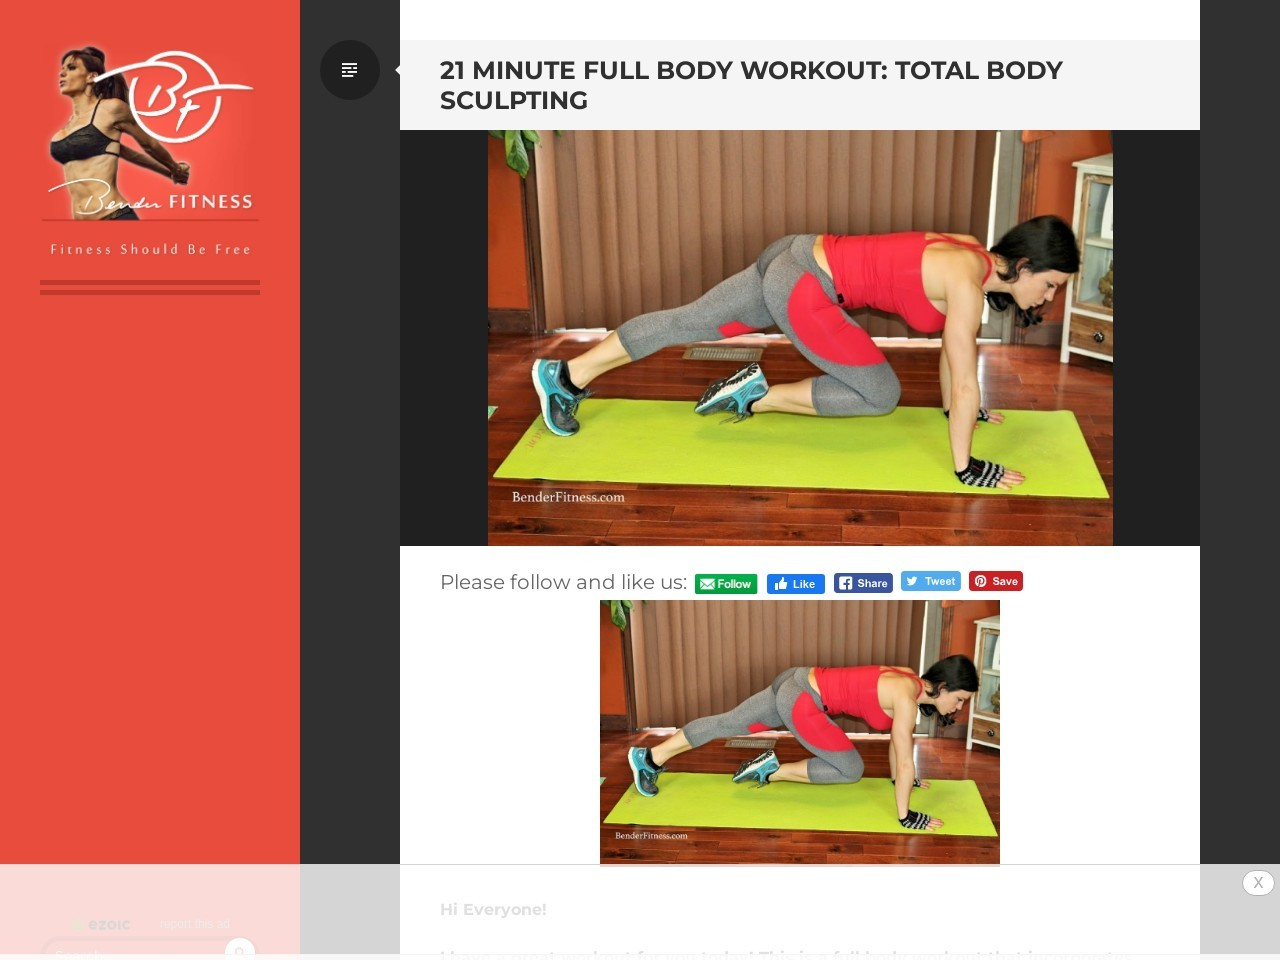 21 Minute Full Body Exercise: Total Body Sculpting